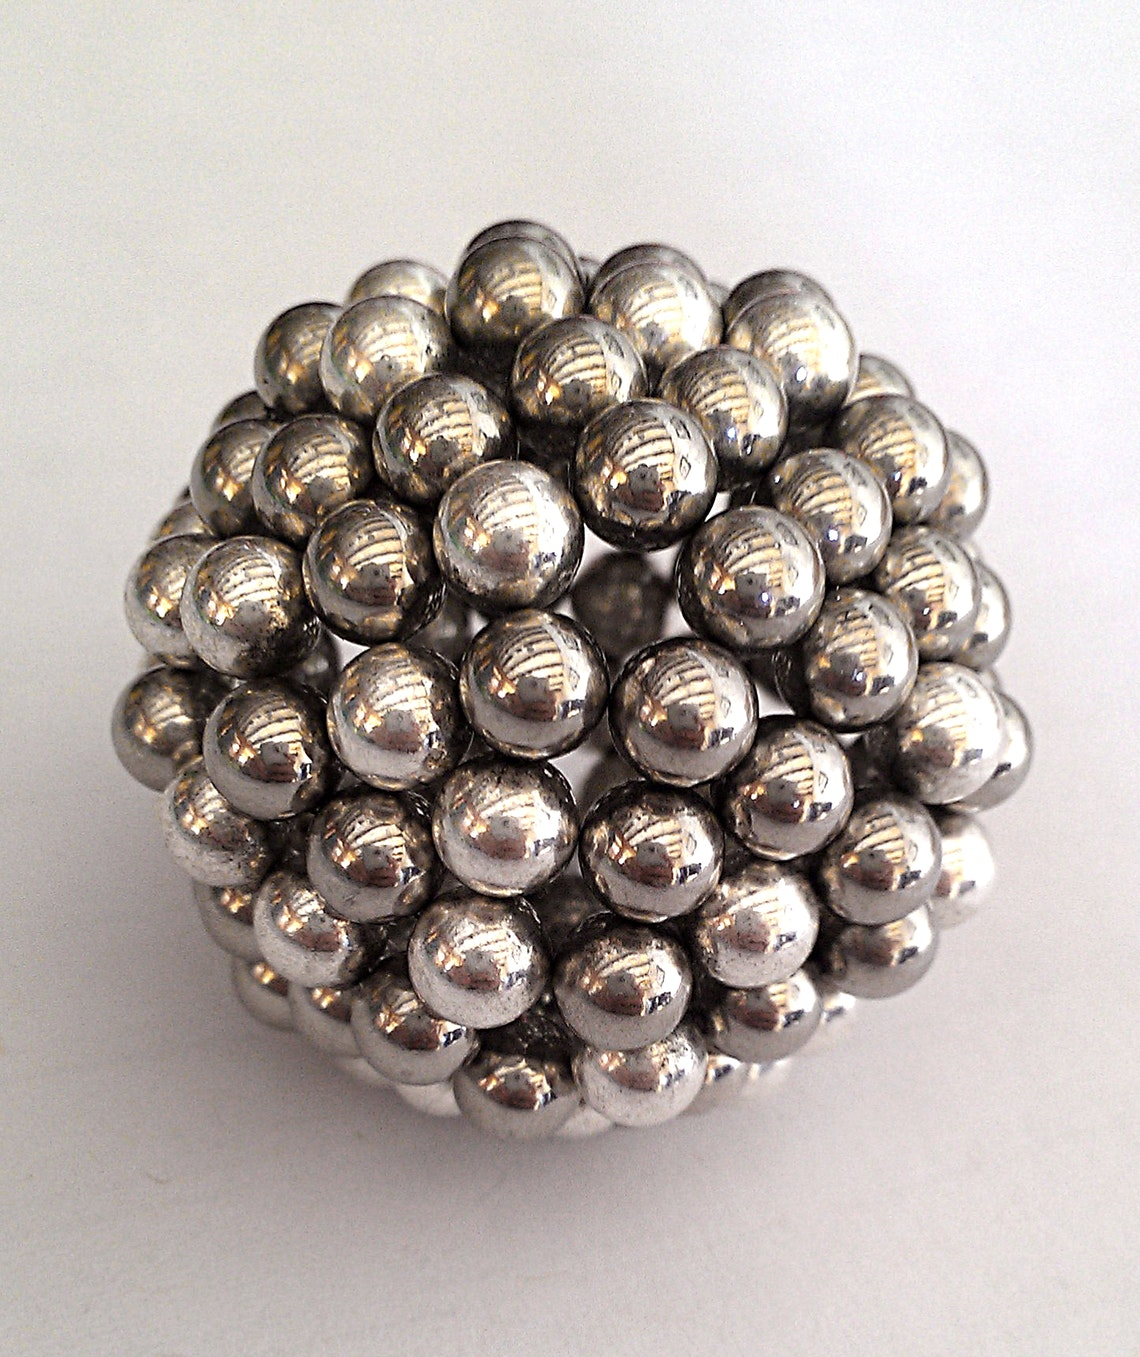 Ball made with sphere magnets